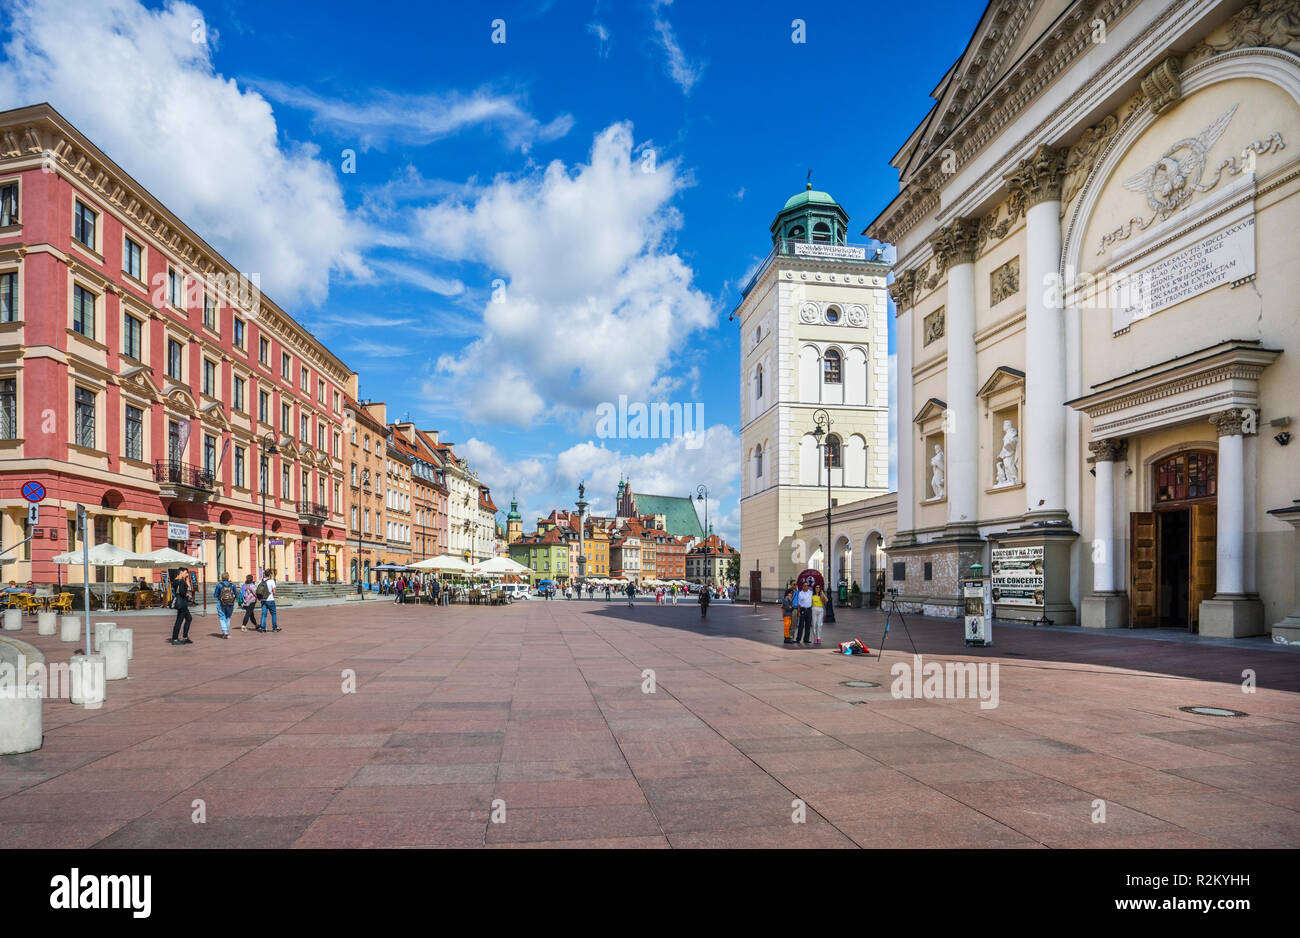 the Neoclassical facade and bell tower of St. Anne's Church with Sigismund's Column on Castle Square in the background, Warsaw, Polans - Stock Image